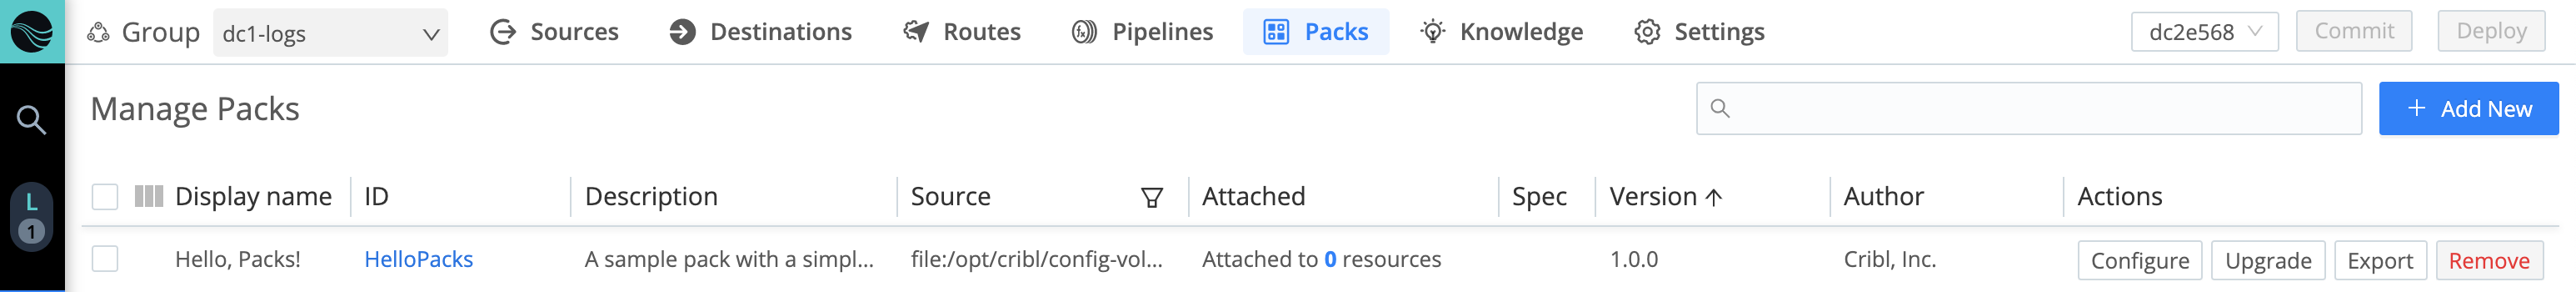 Manage Packs page with example Pack